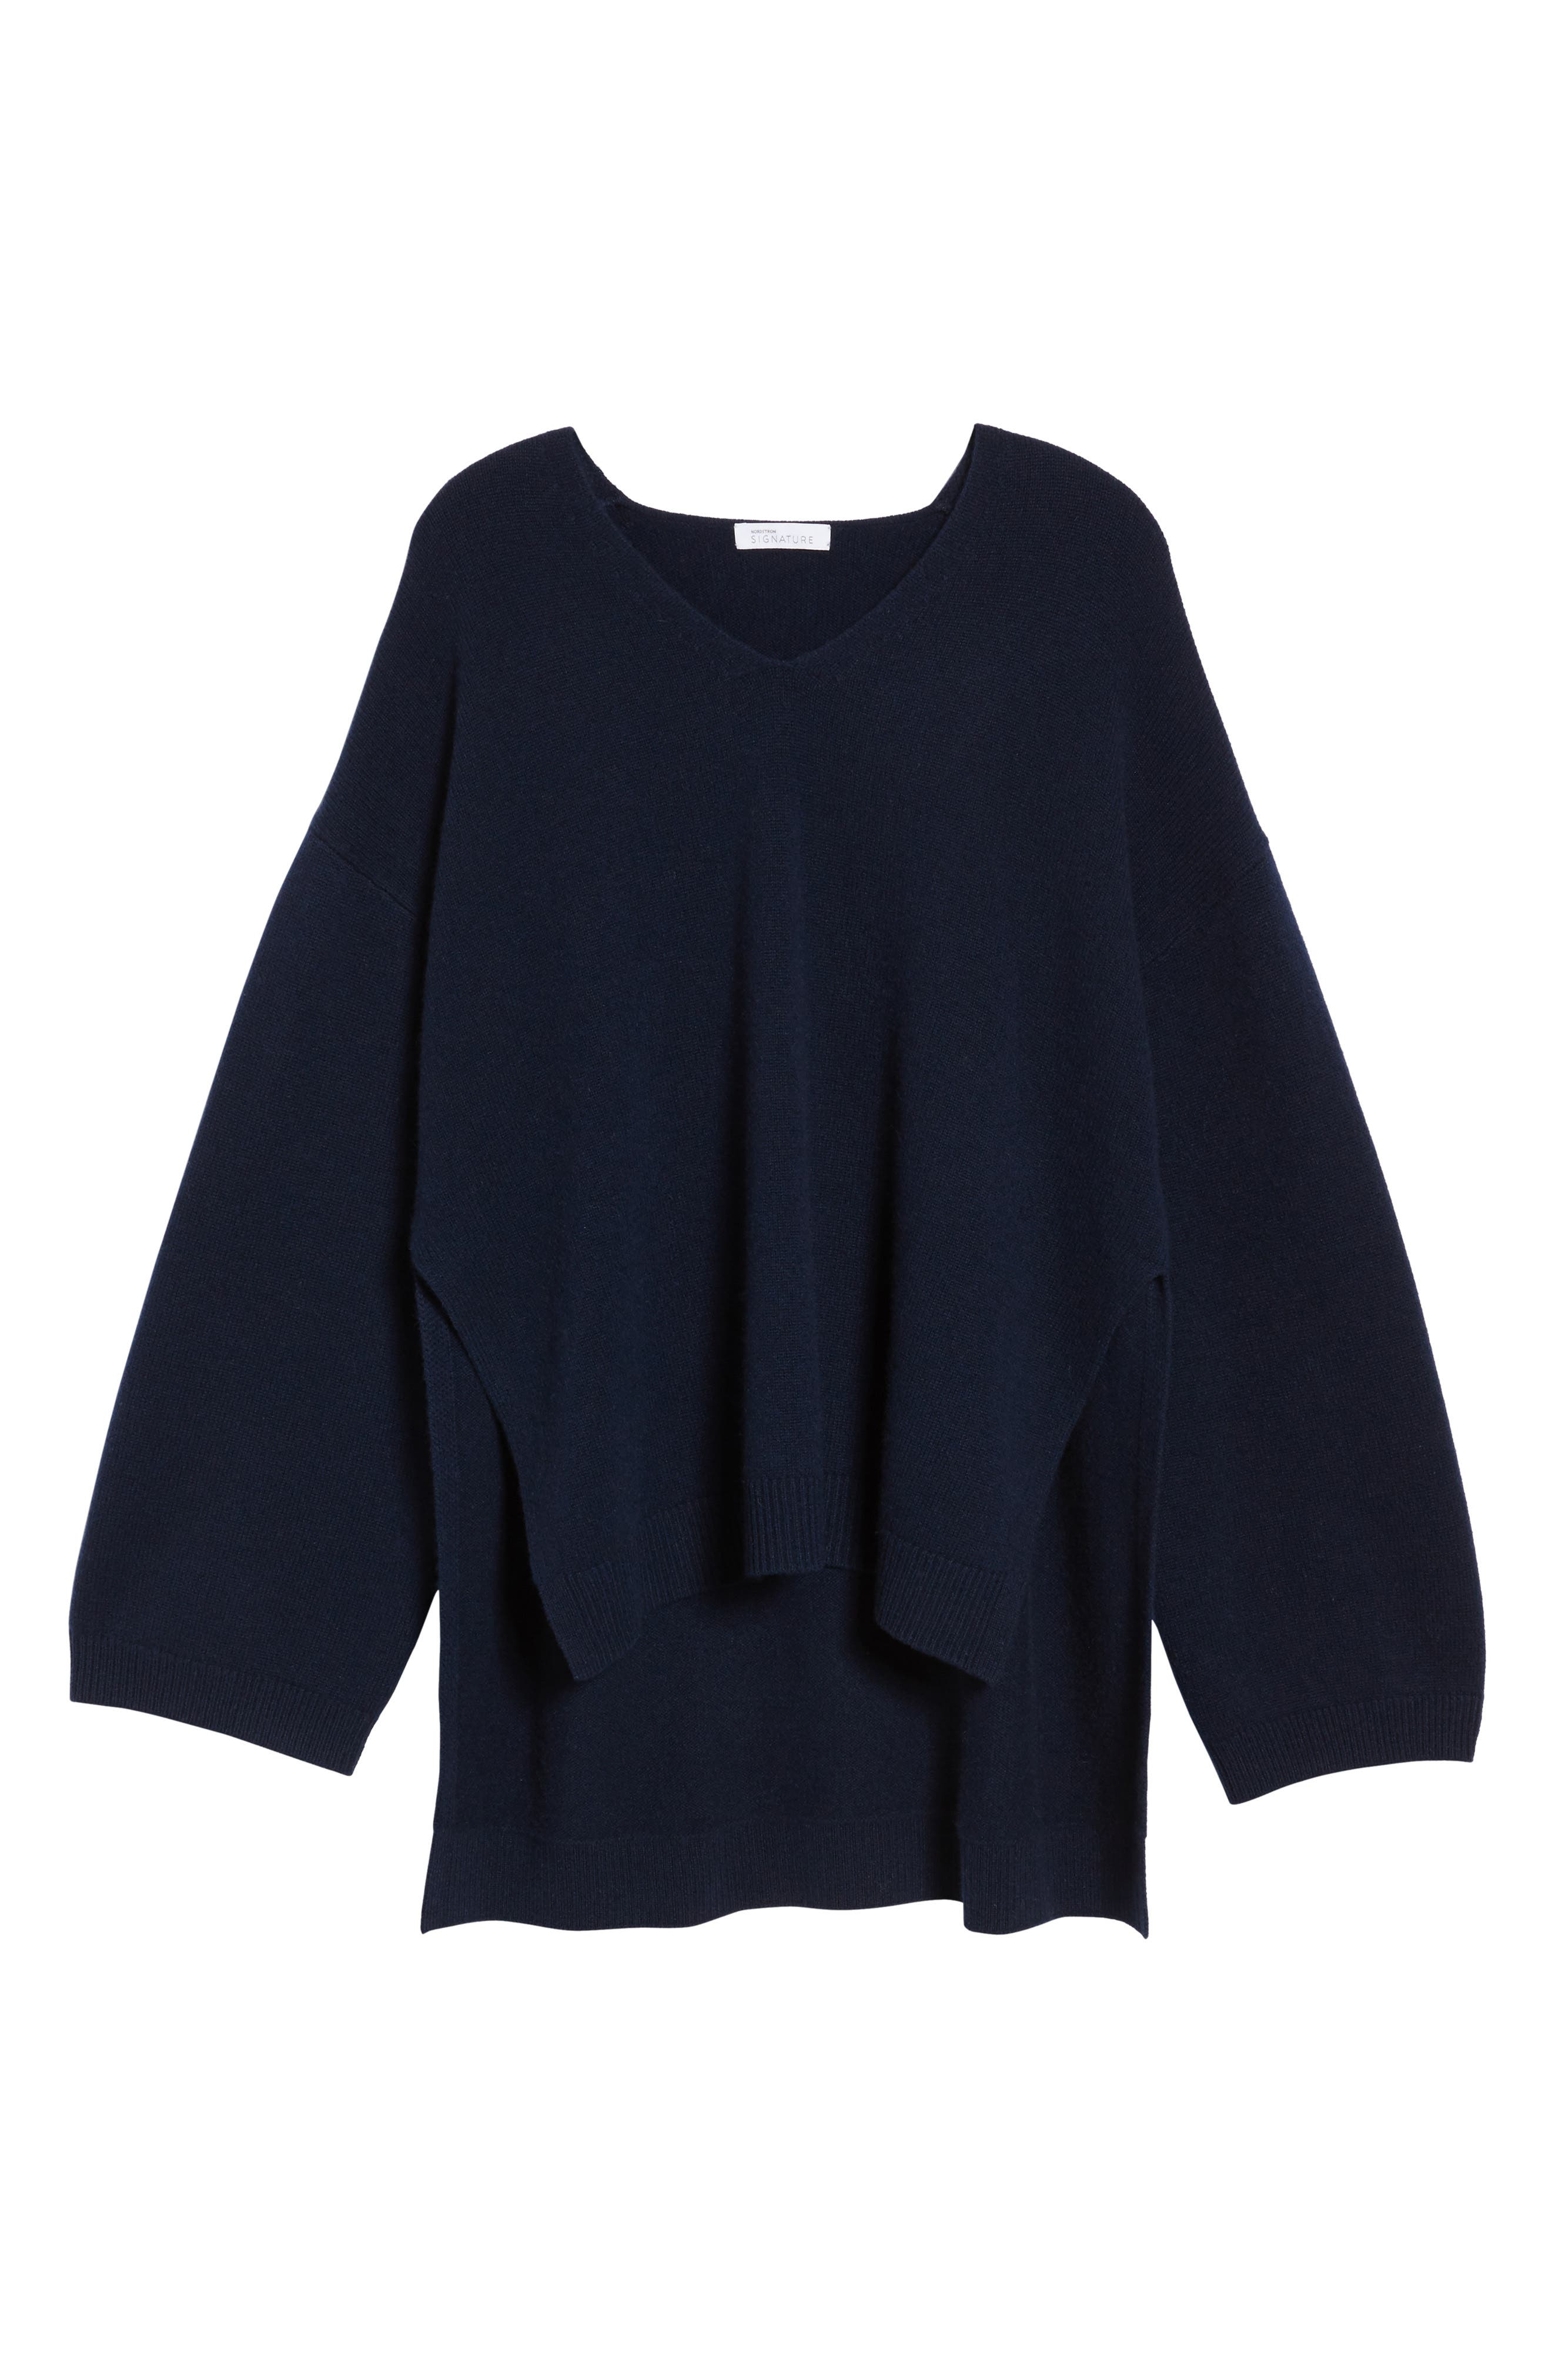 Cashmere High/Low Tunic Sweater,                             Alternate thumbnail 6, color,                             Navy Medieval